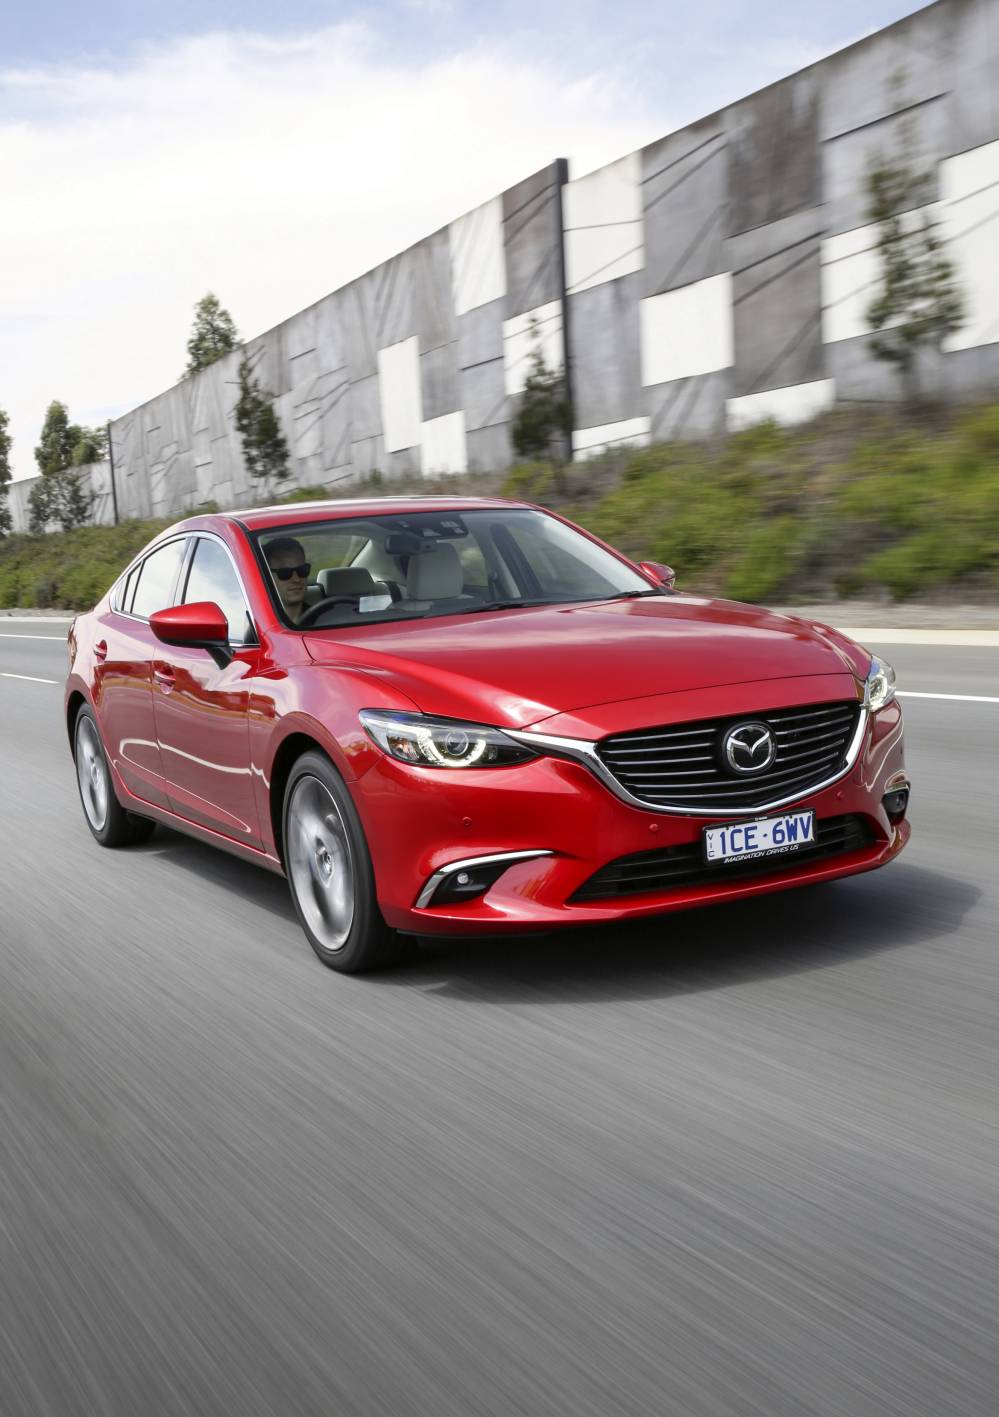 mazda cars news price drop for 2015 mazda6 facelift. Black Bedroom Furniture Sets. Home Design Ideas